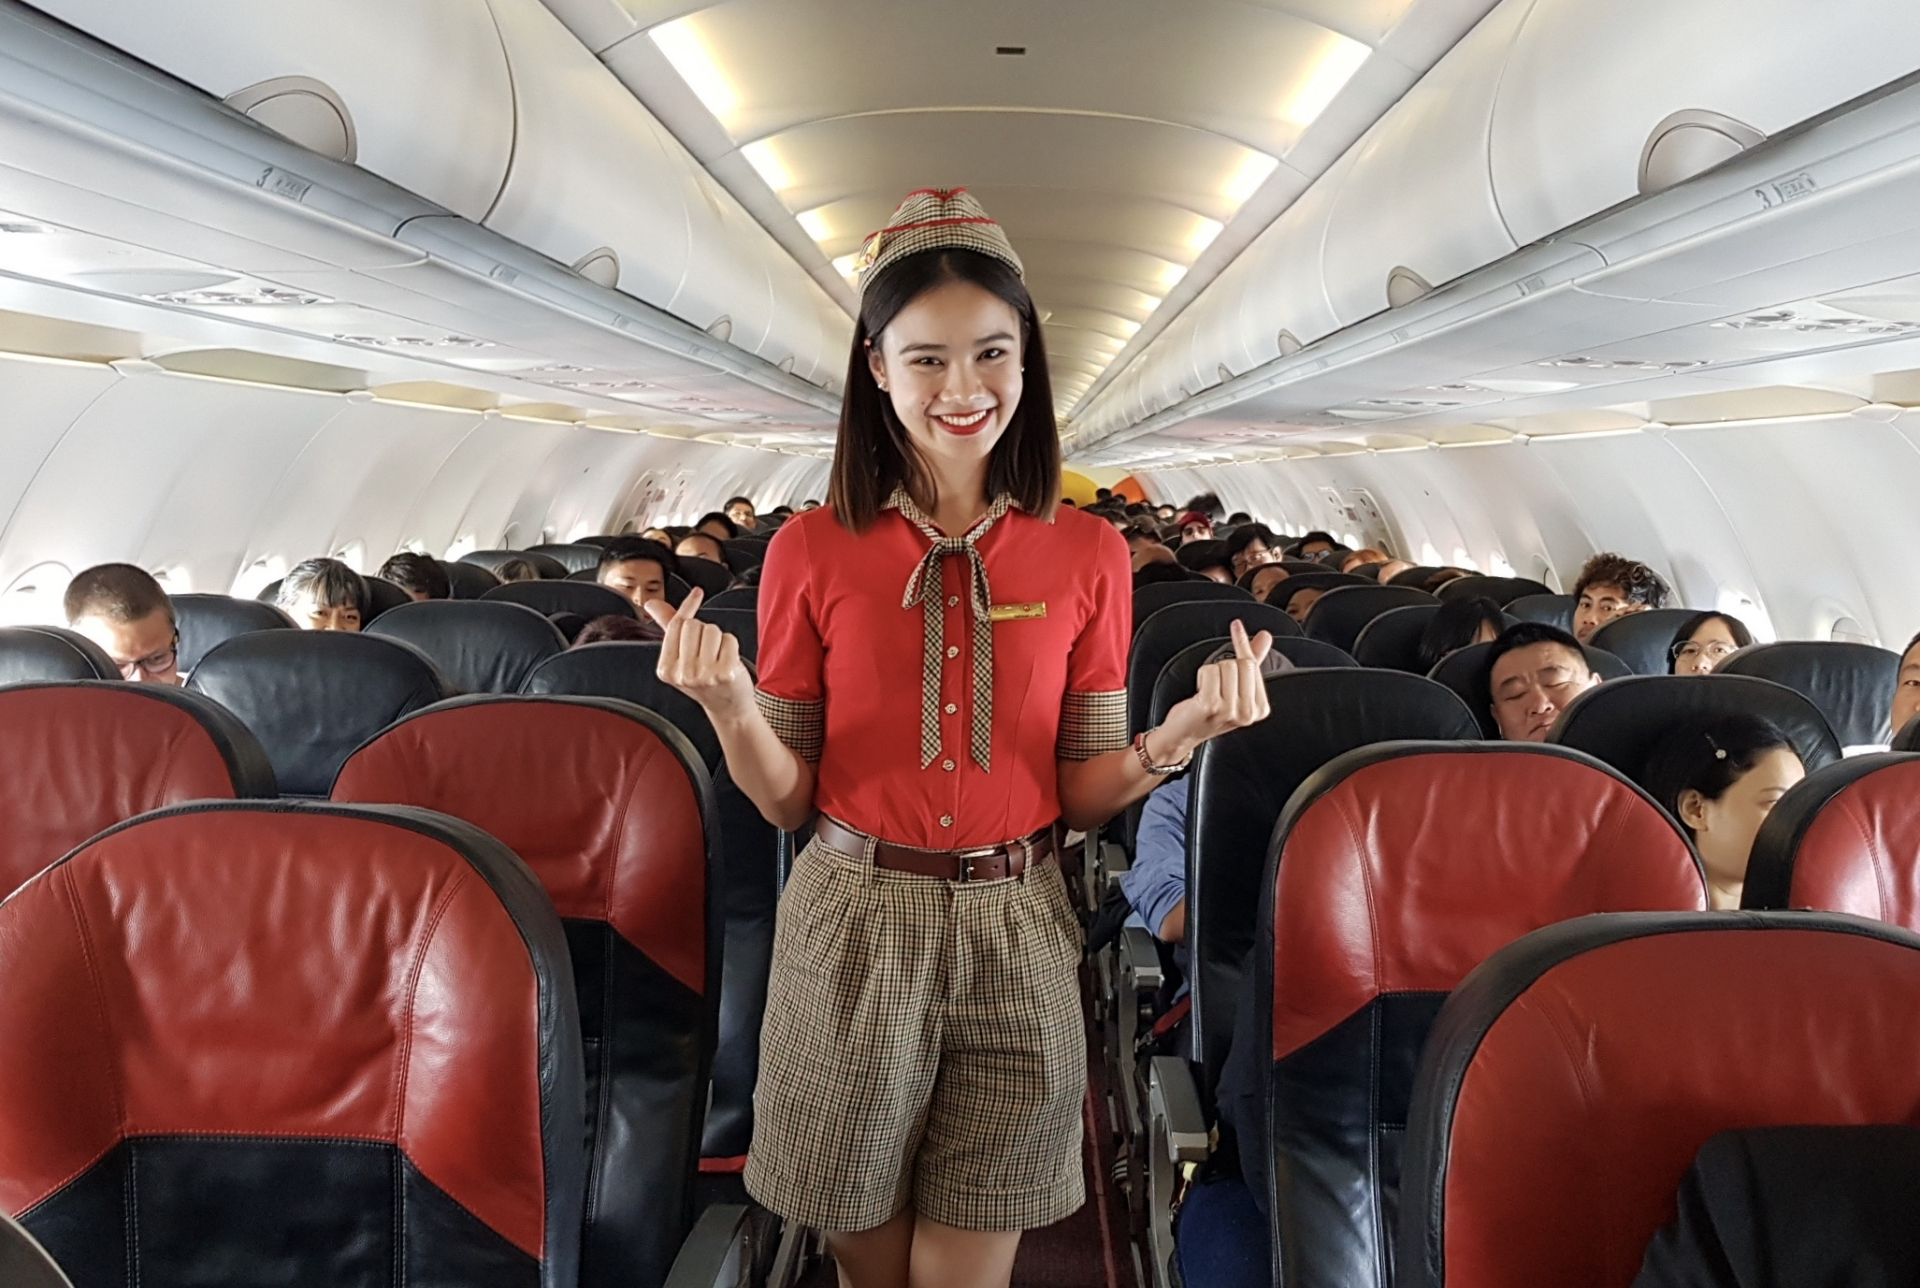 Thai Vietjet offers super-saver fares from just $1.50 for all 13 routes in Thailand